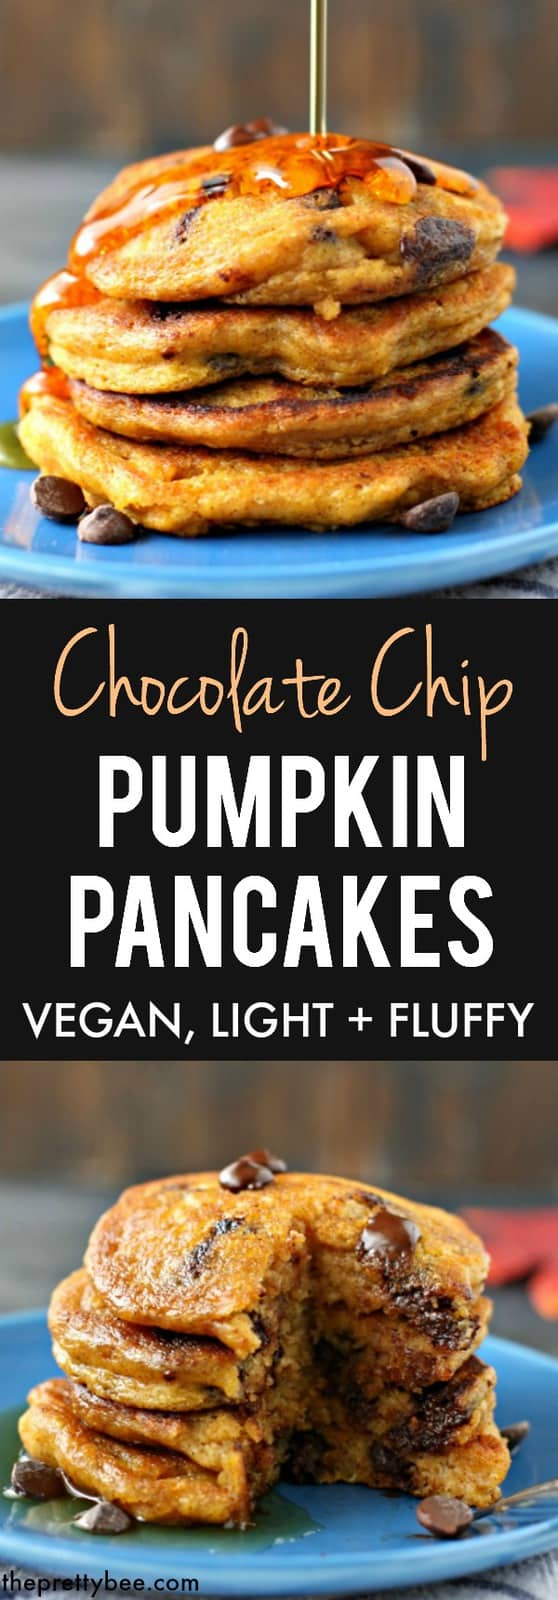 Perfectly light and fluffy vegan pumpkin chocolate chip pancakes are a delicious fall breakfast!